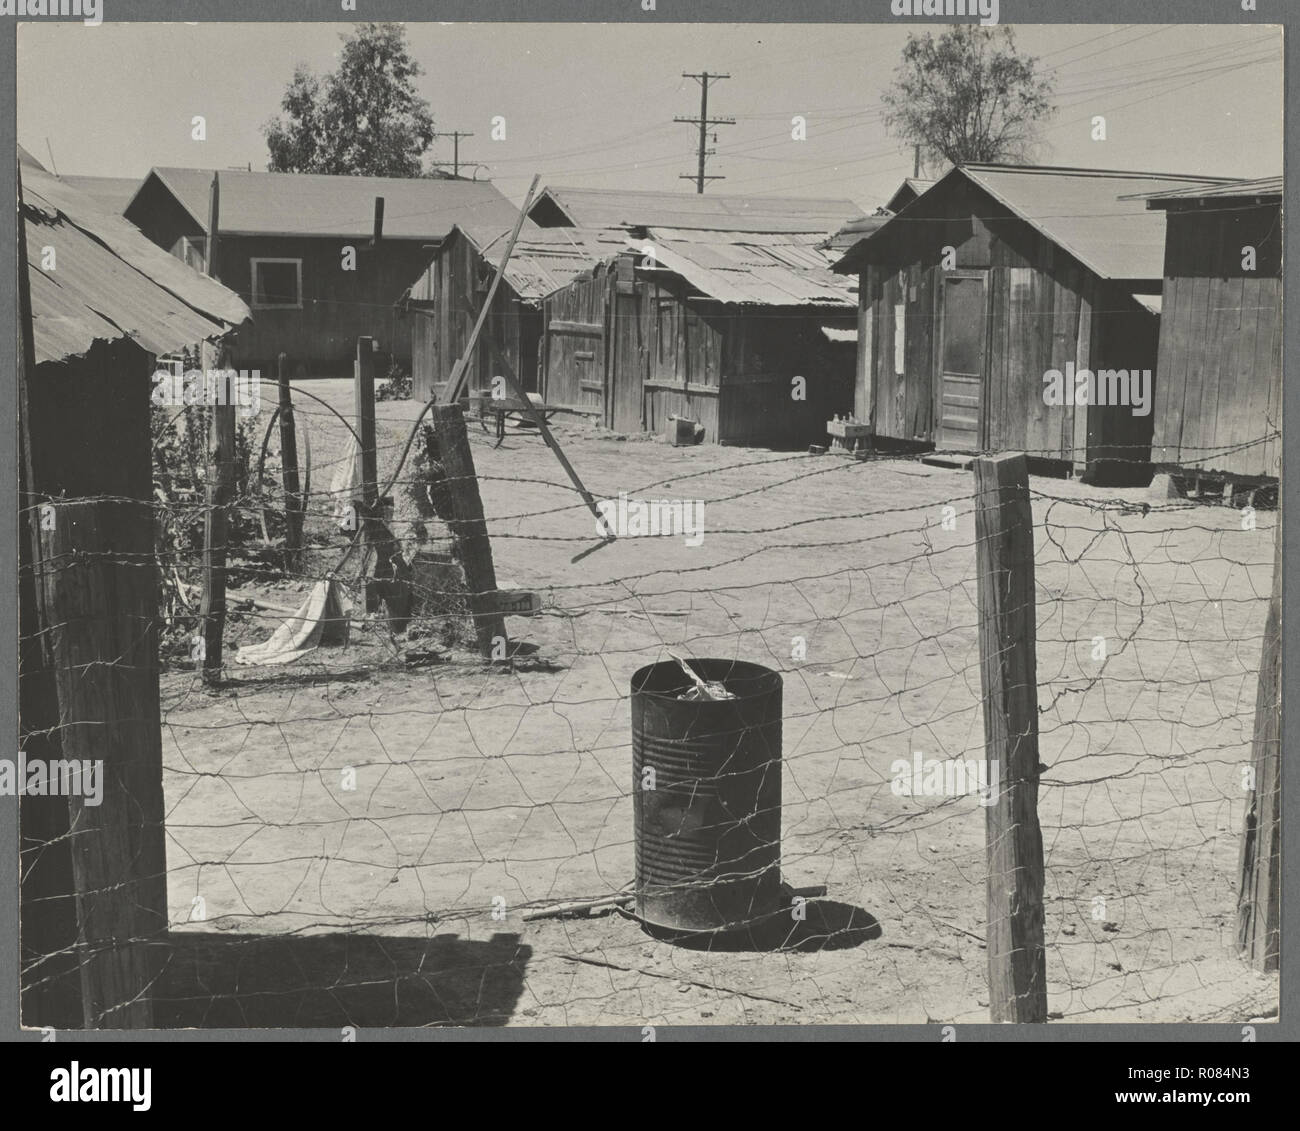 phot from the great depression in america around the 1930s - Stock Image